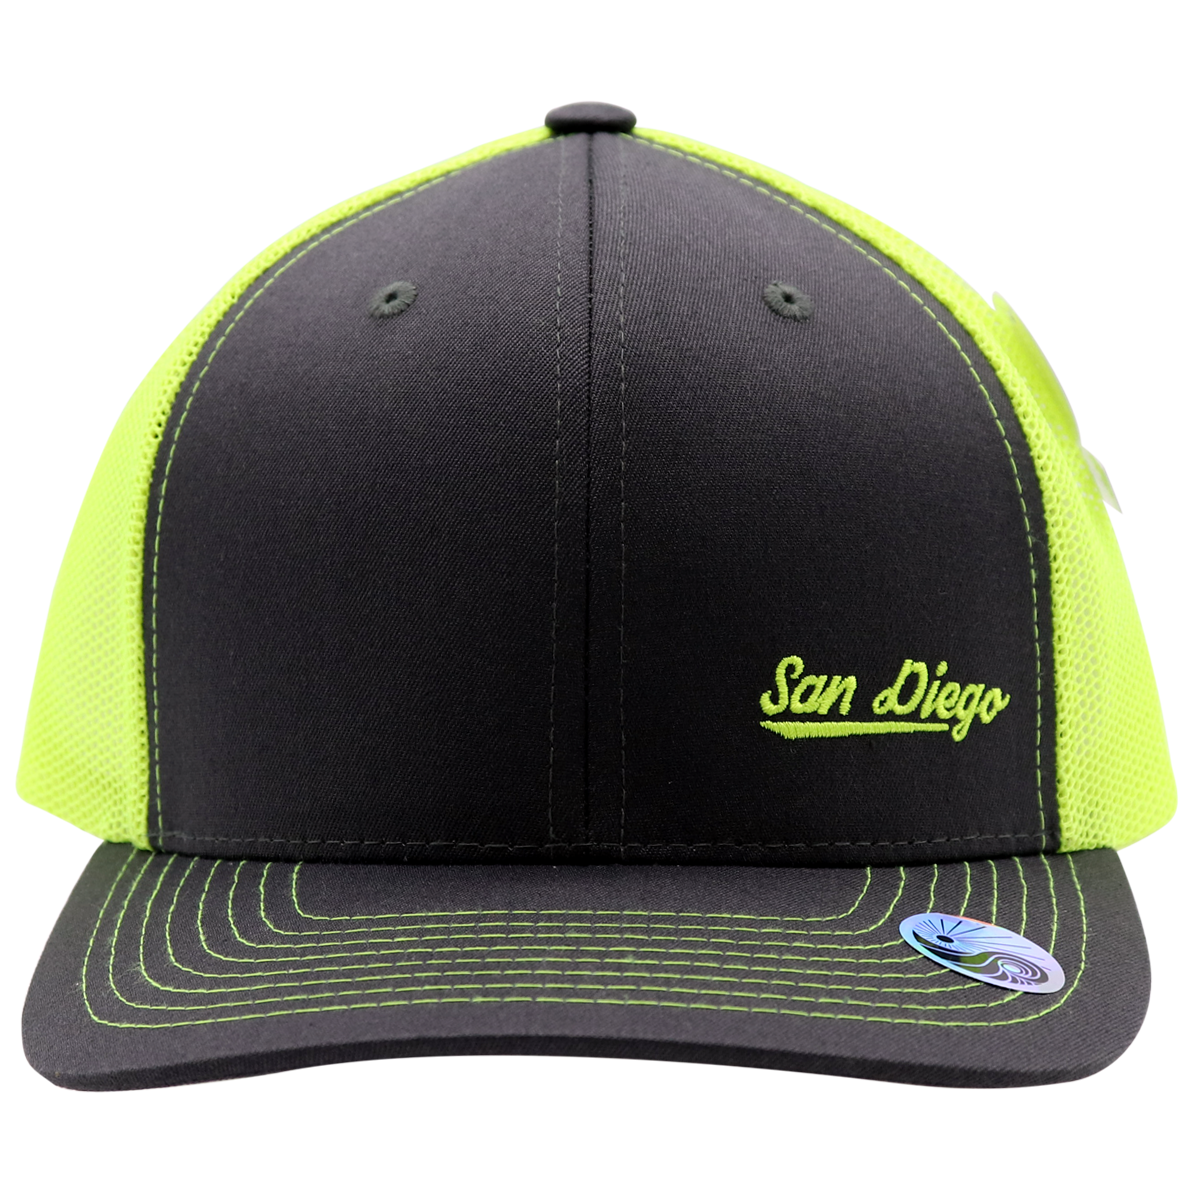 Adult trucker hat for men or women. Solid gray front with neon yellow mesh that is cool and breathable for summer hot days. Embroidery San Diego on bottom left front corner. Spring break, coachella, las vegas, LGBTQ, spring, beach attire. Trendy poplar pop of neon color.